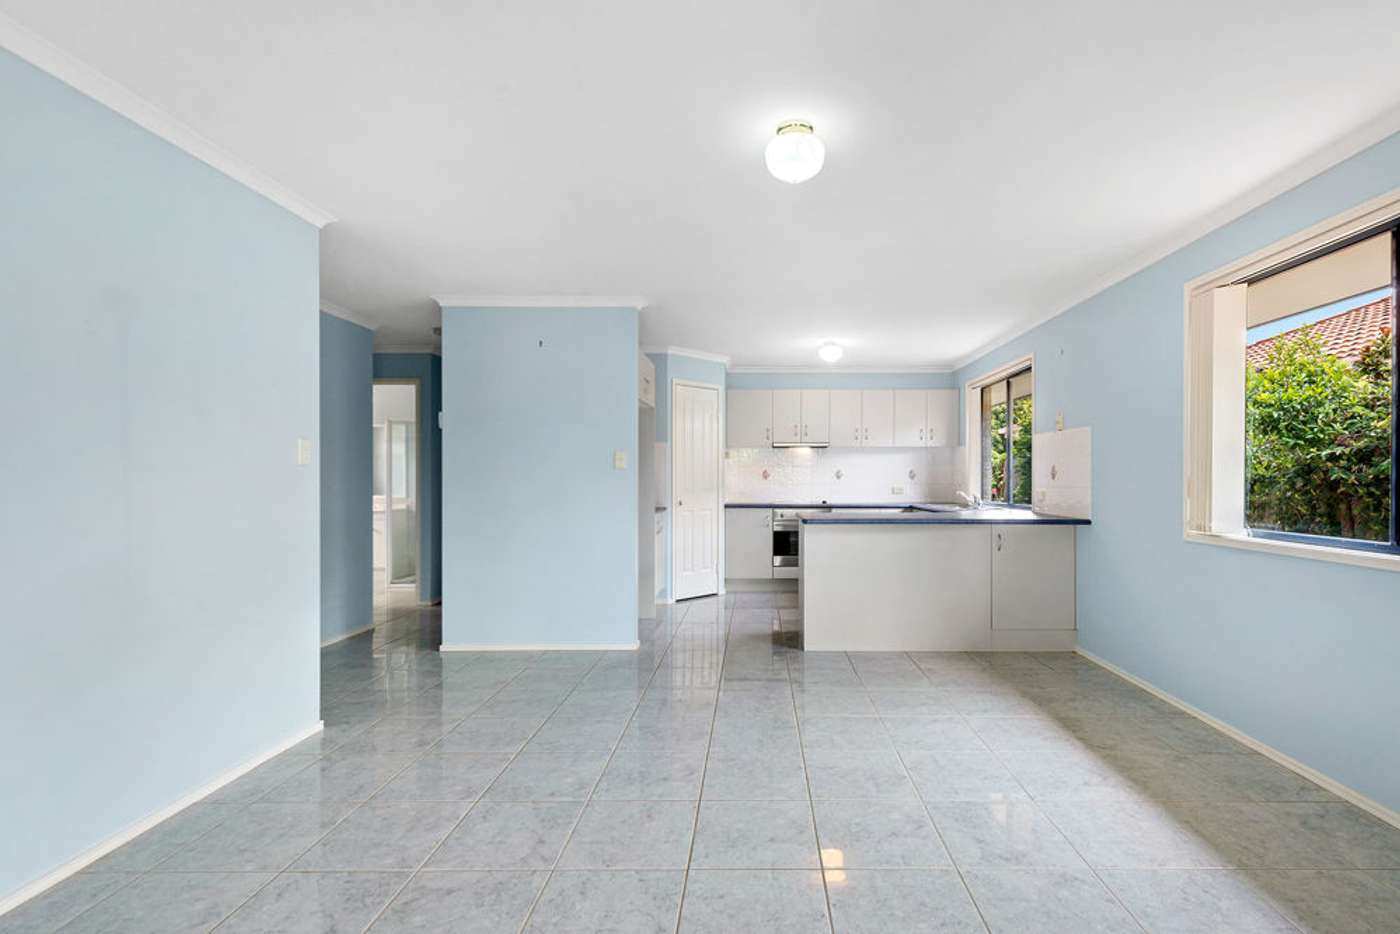 Fifth view of Homely house listing, 3 Galway Street, Caloundra West QLD 4551